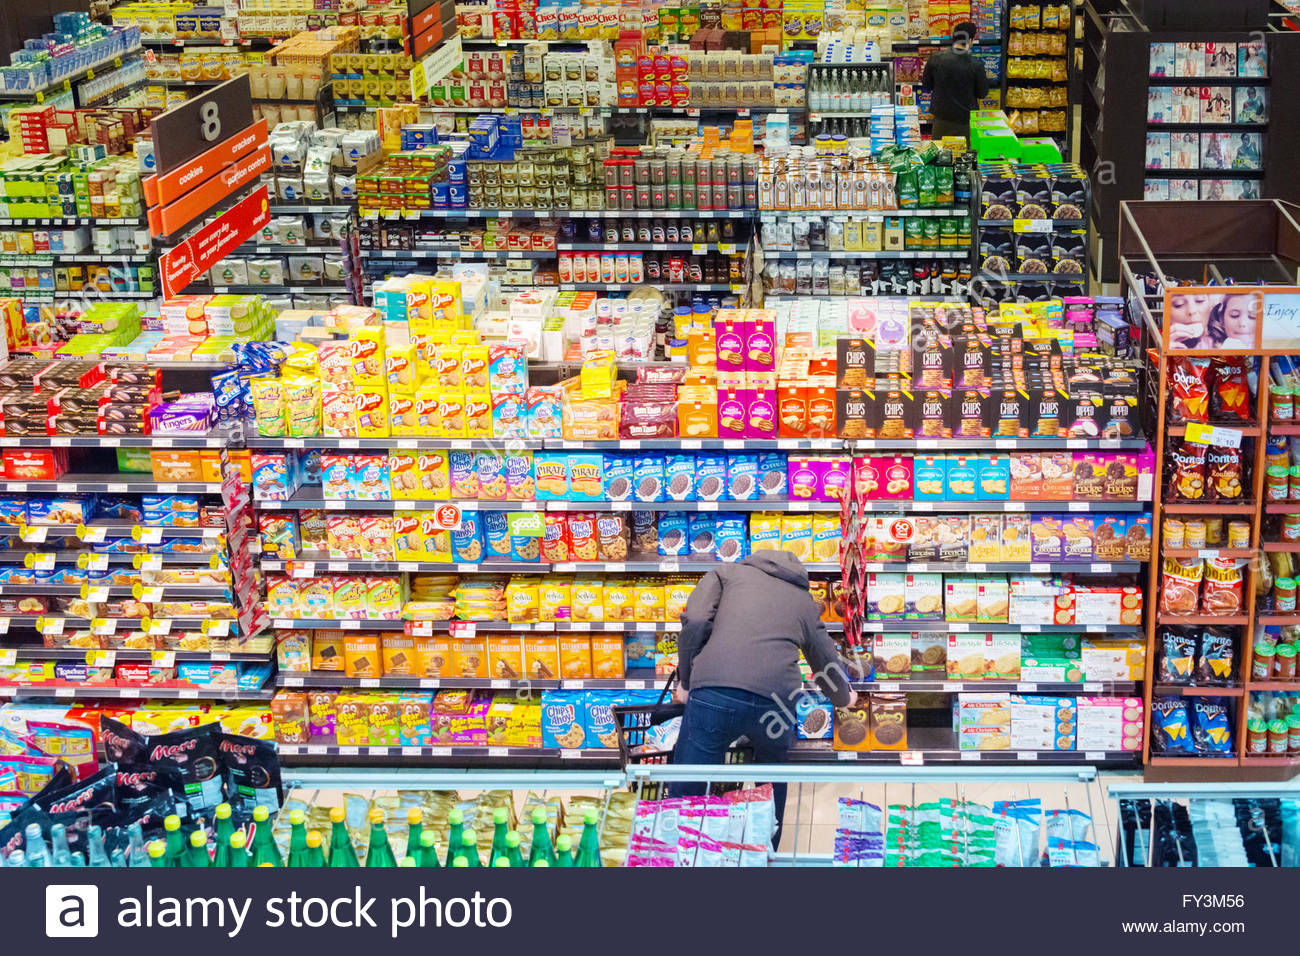 cbd9276906e Toronto, Canada, one person choosing food products from the grocery ...